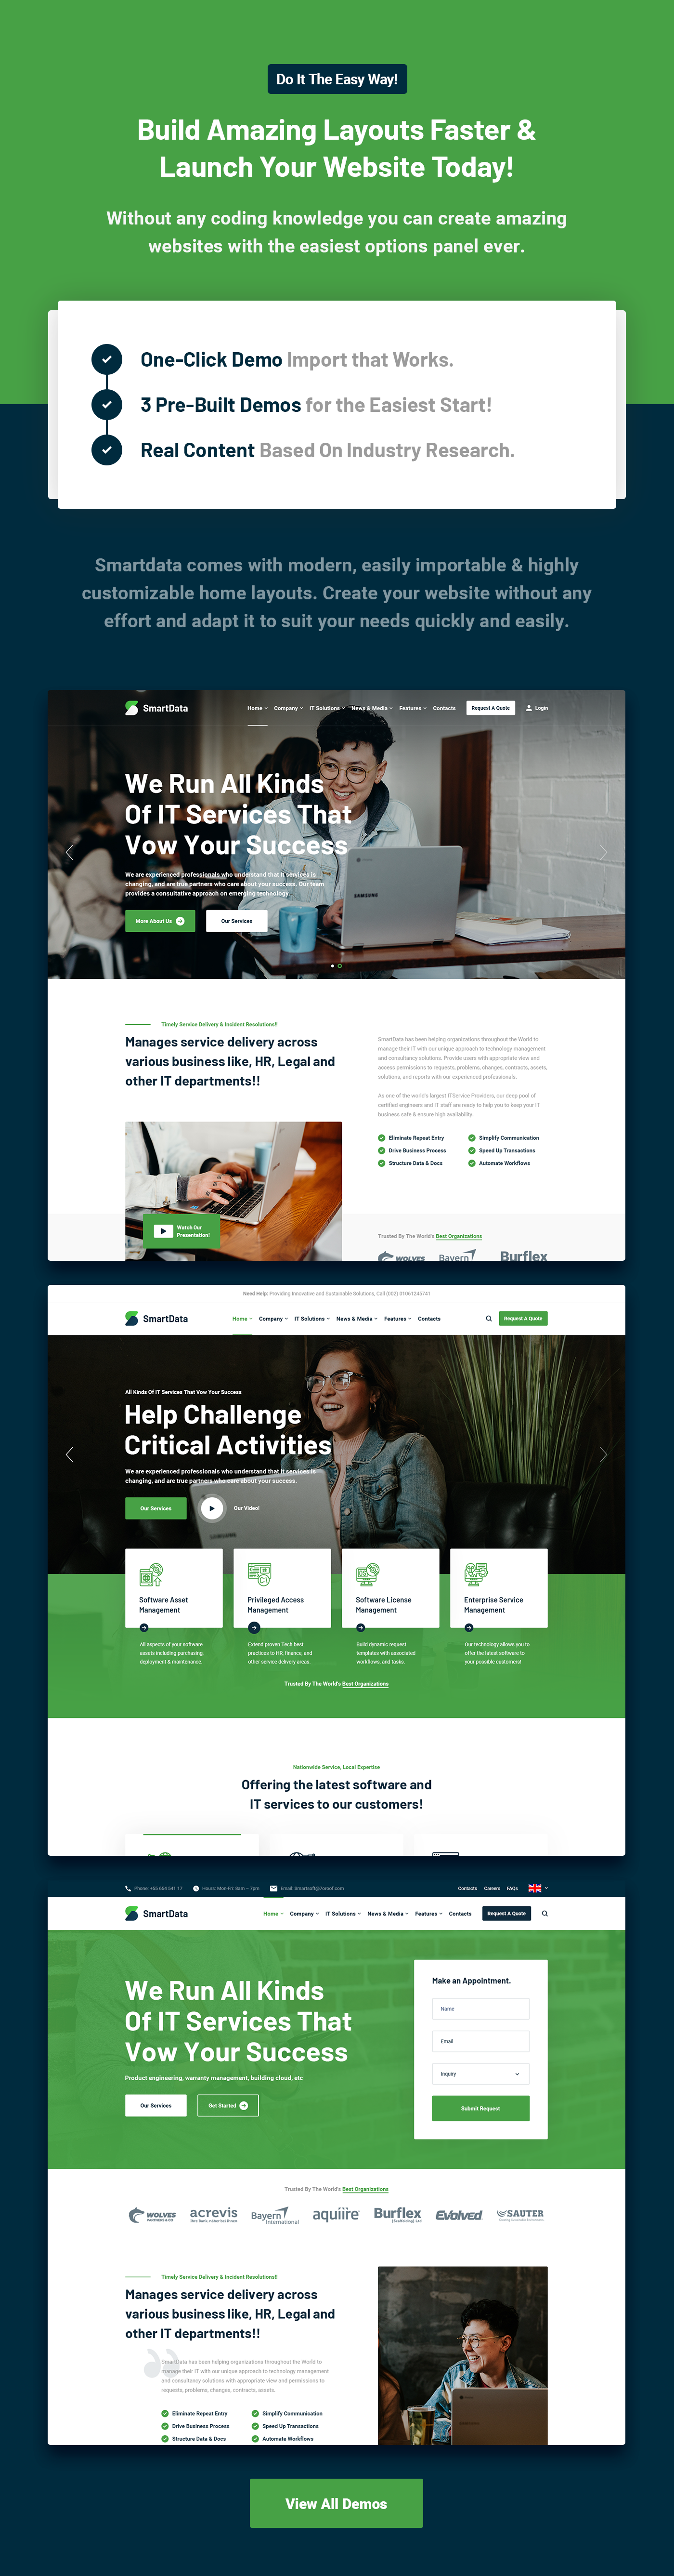 Smartdata - IT Solutions & Services WordPress Theme - 5